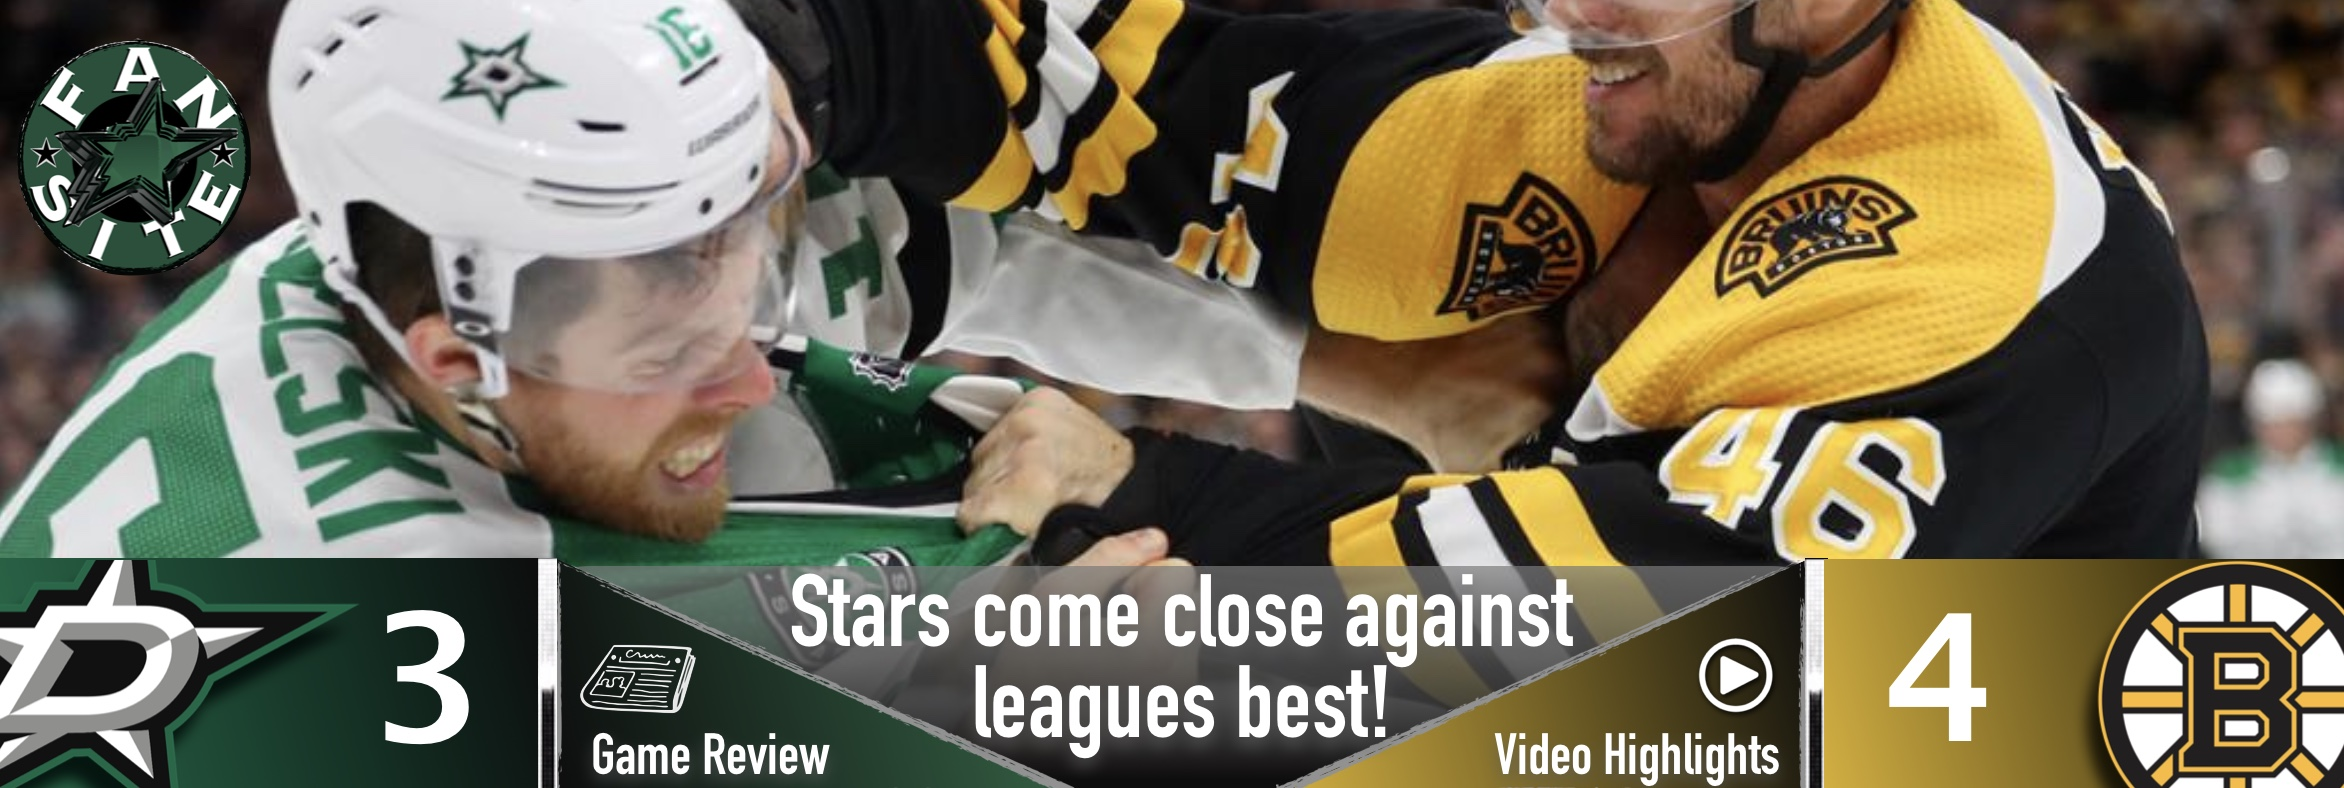 Stars come close against leagues best